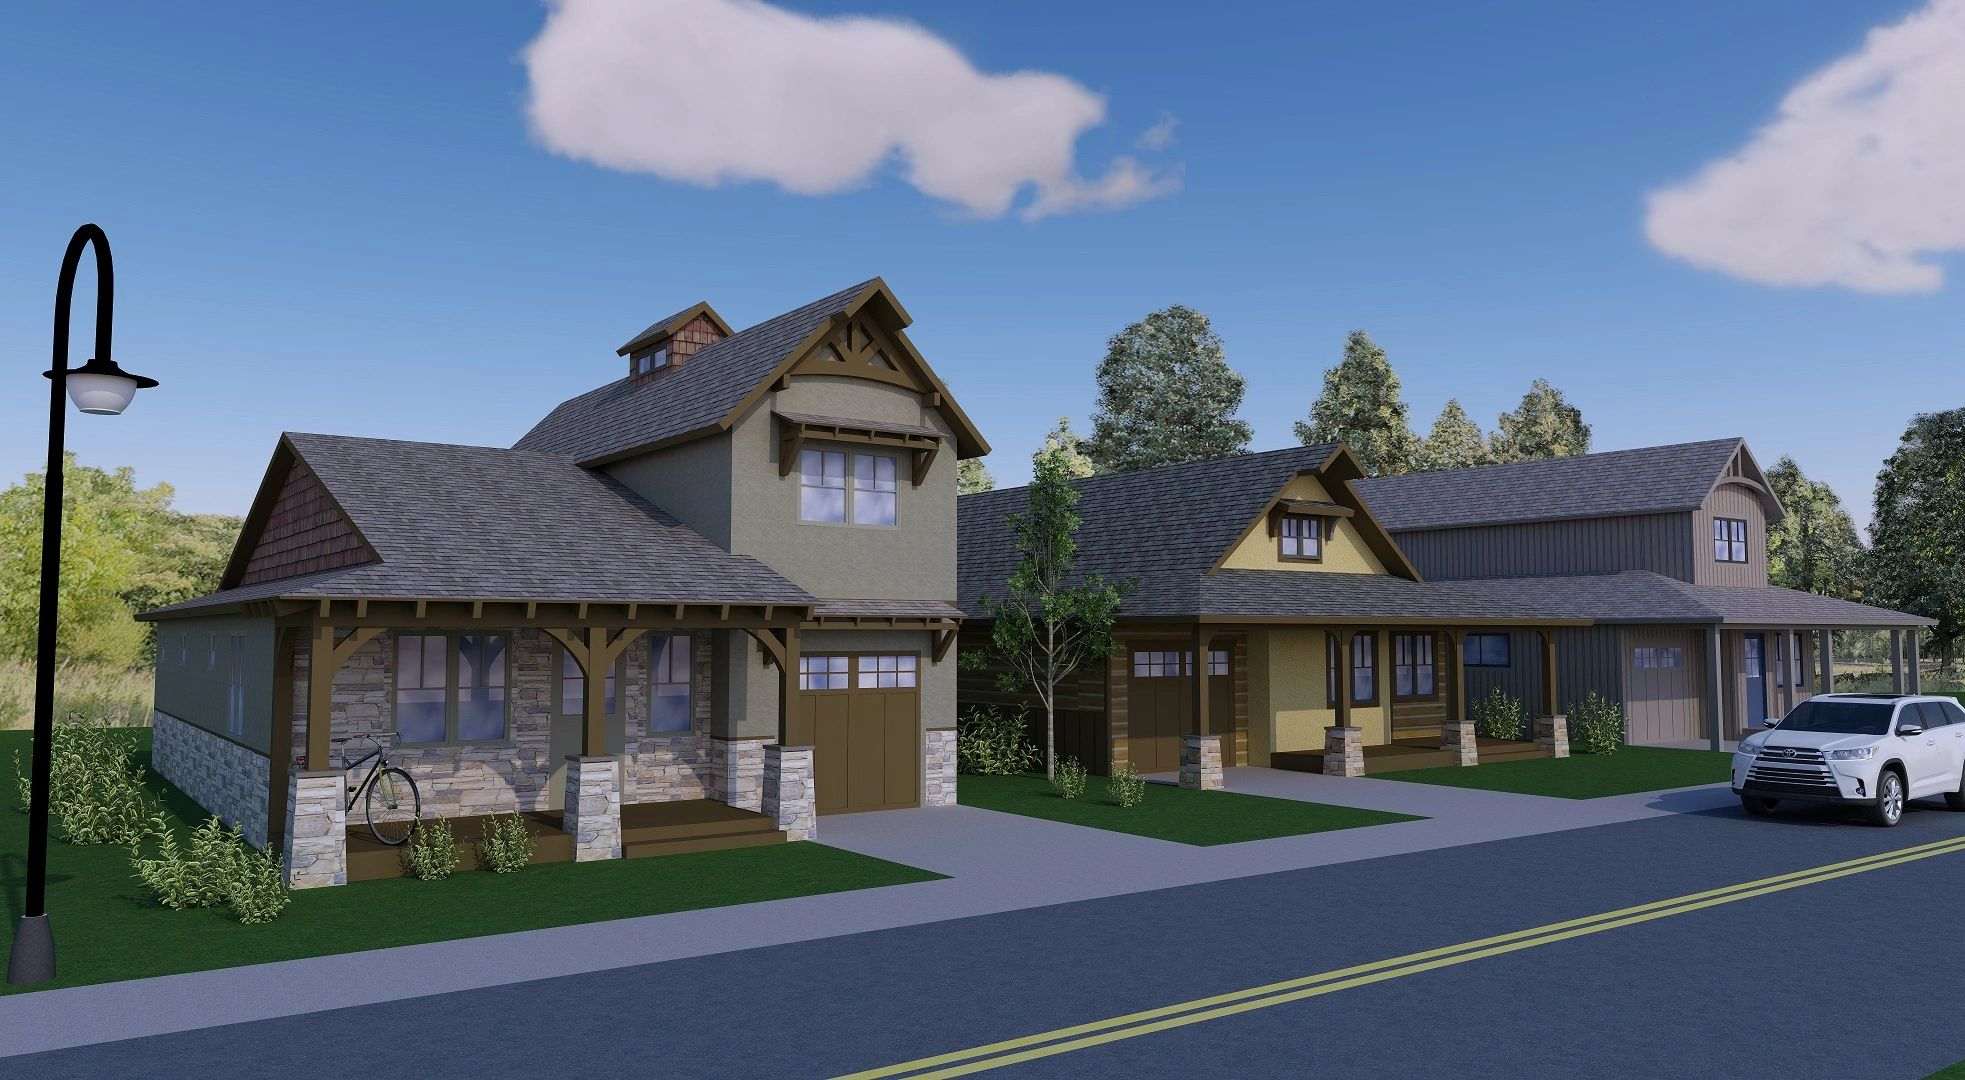 A new neighborhood is emerging in downtown Pagosa Springs